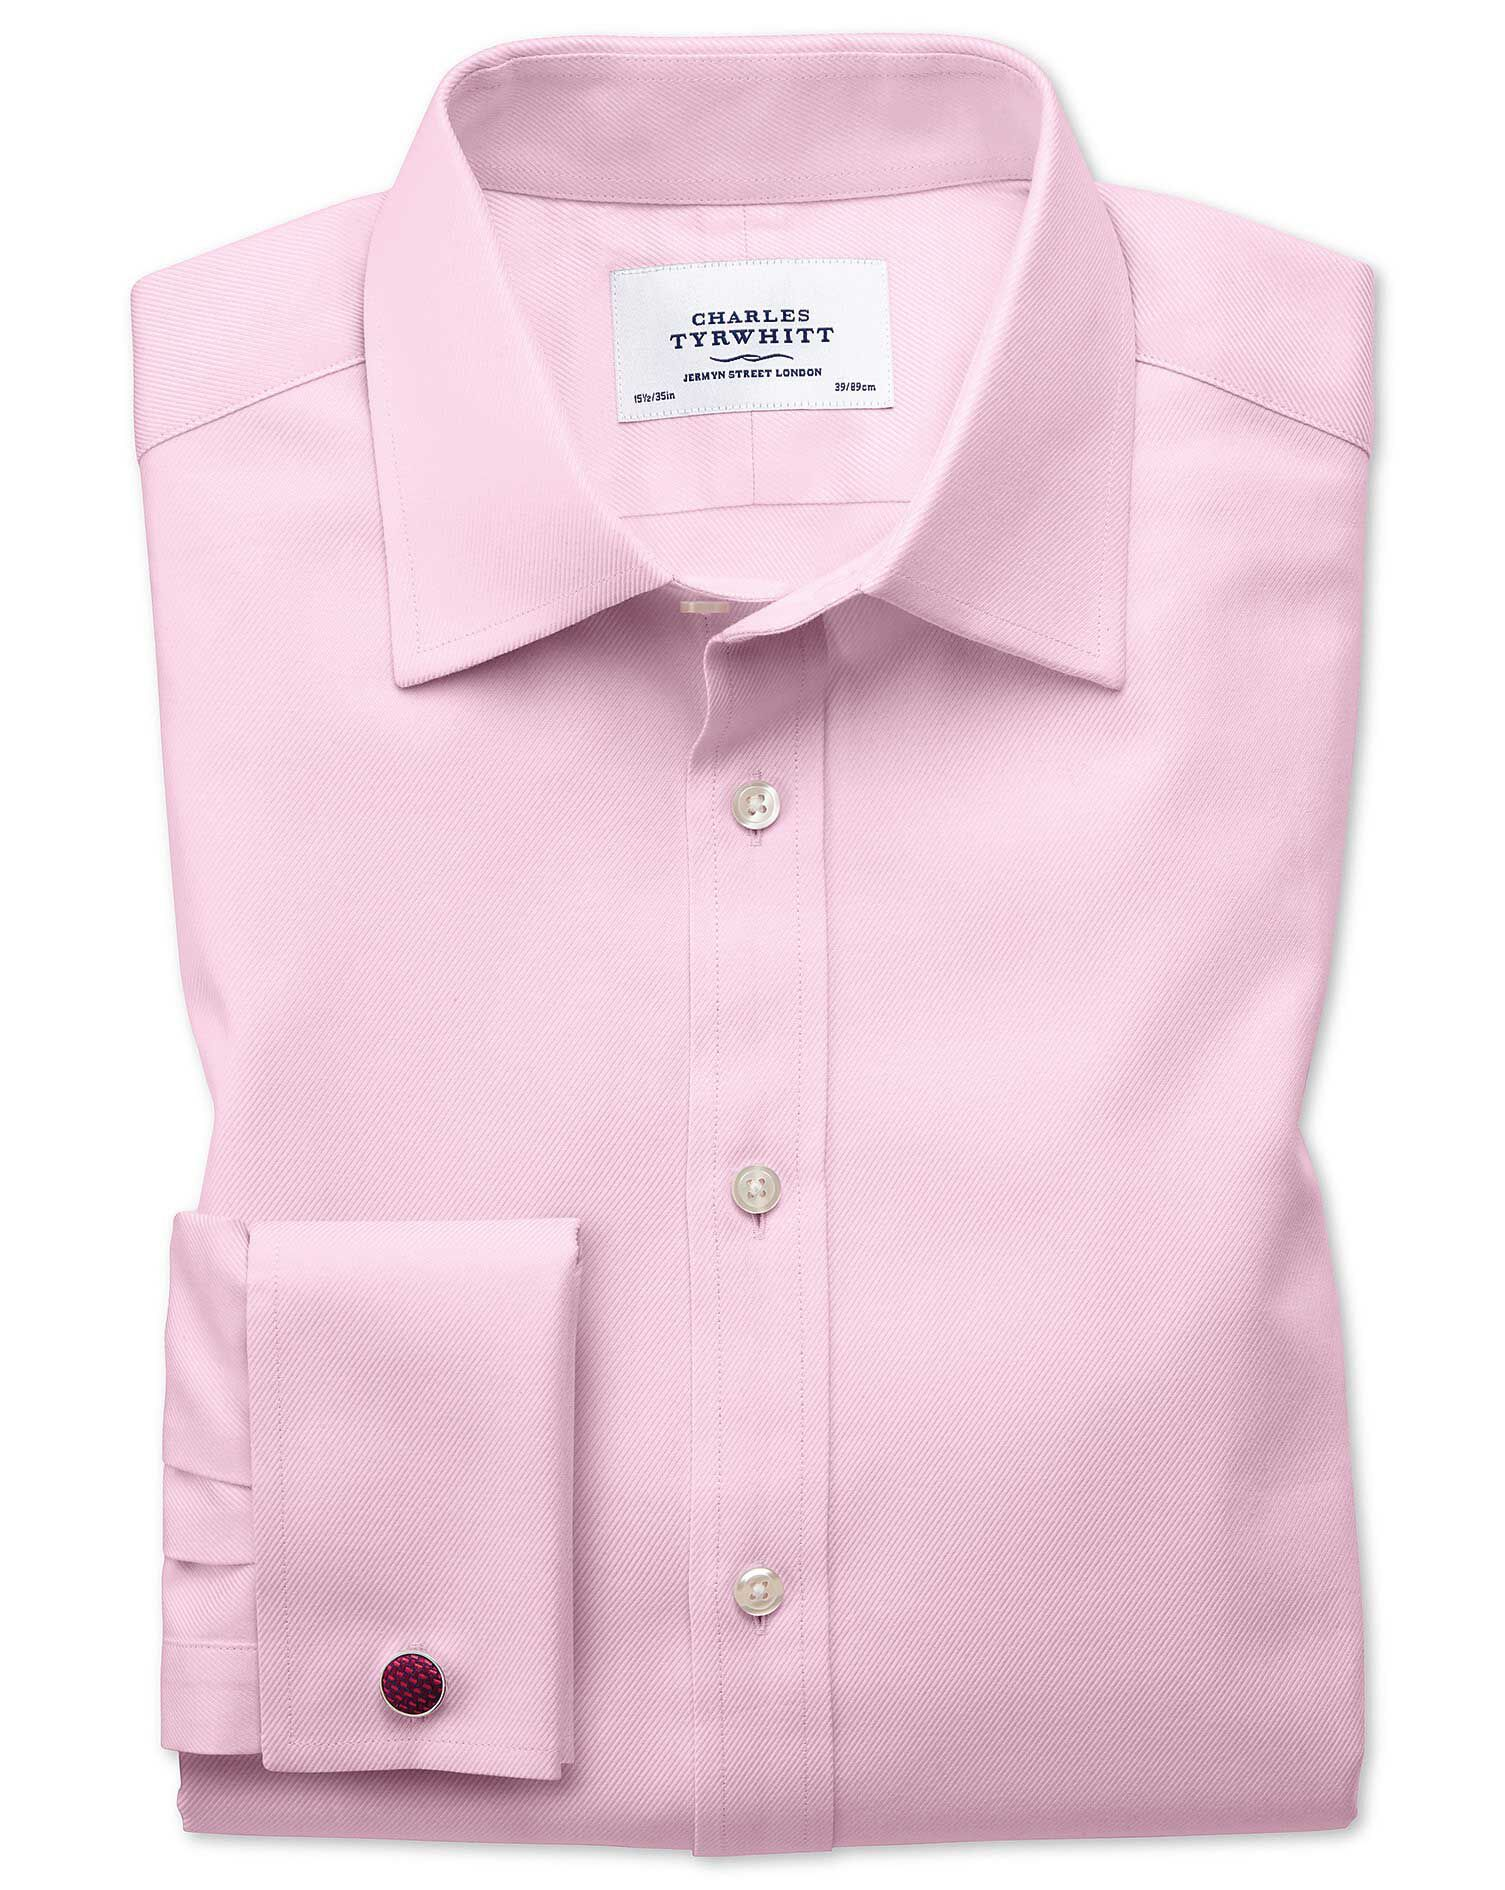 Slim Fit Egyptian Cotton Cavalry Twill Light Pink Formal Shirt Single Cuff Size 16/34 by Charles Tyr